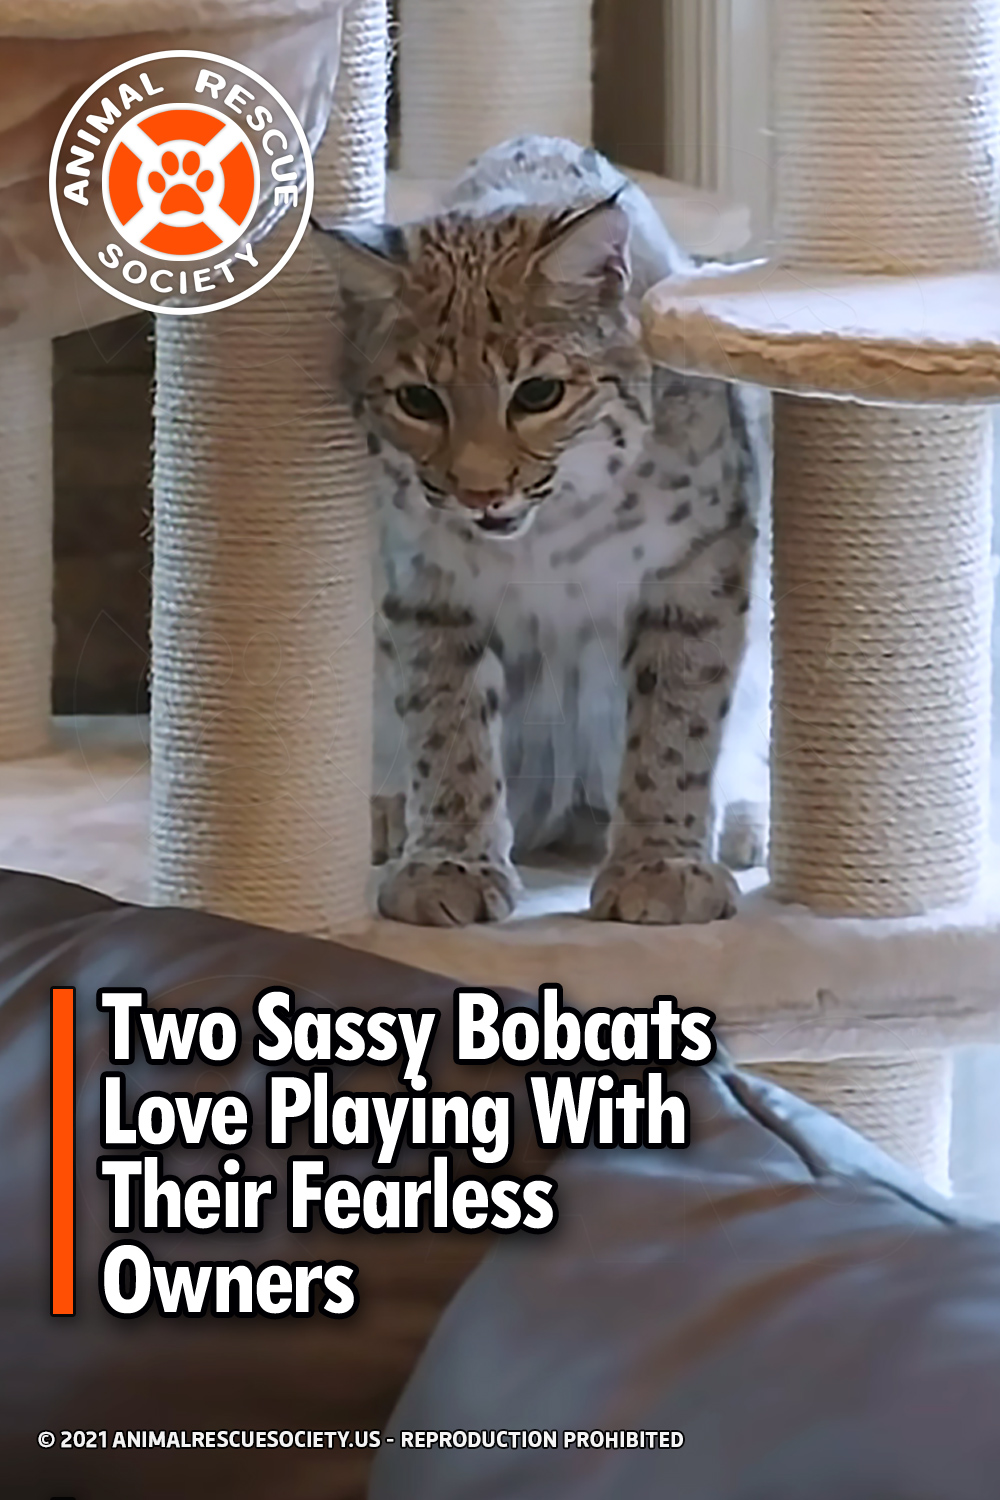 Two Sassy Bobcats Love Playing With Their Fearless Owners